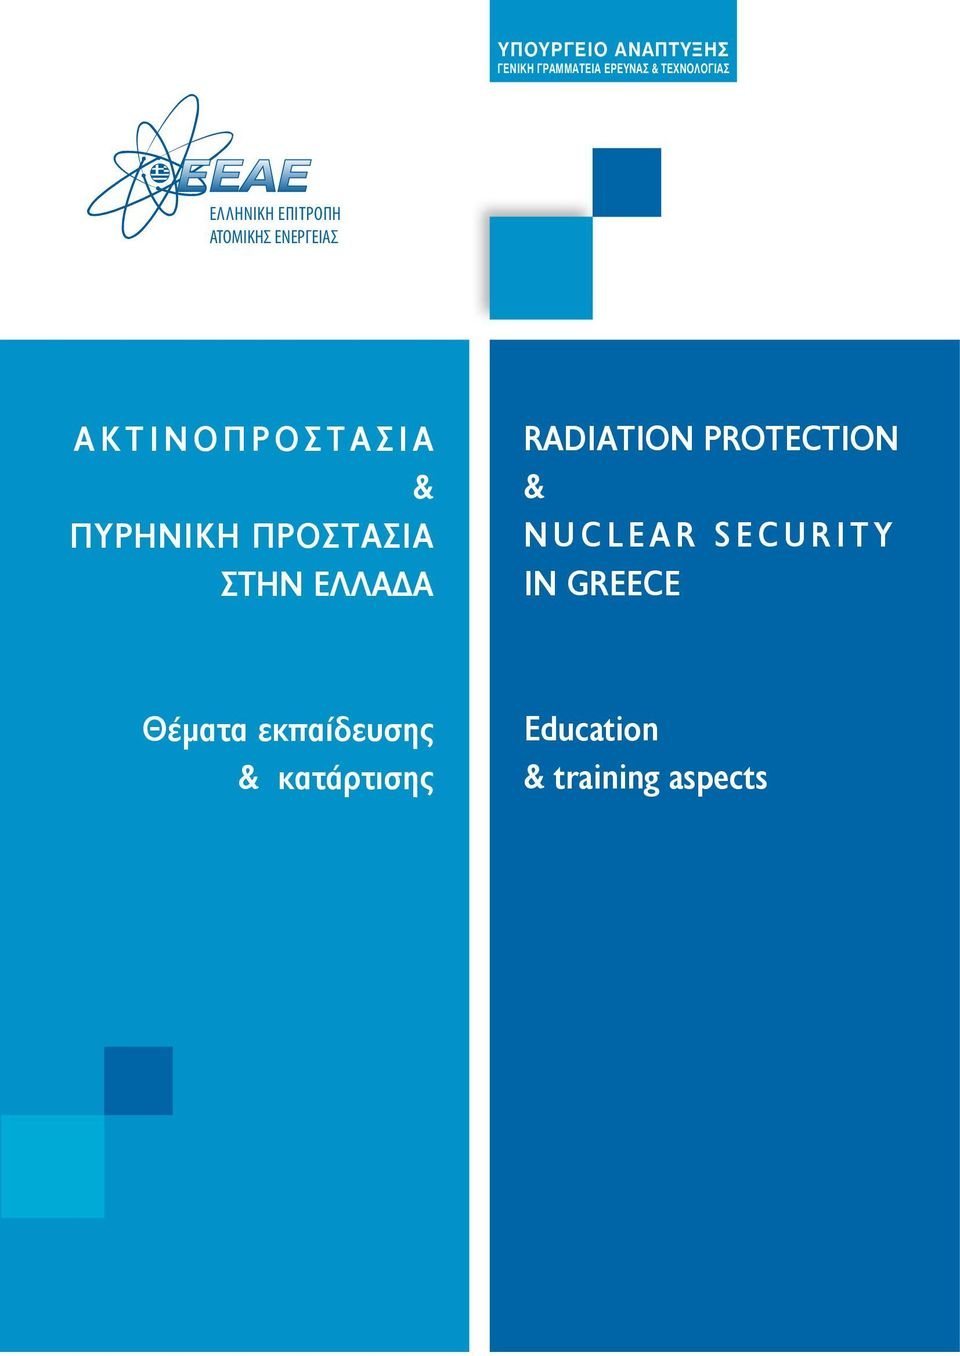 ΠΡΟΣΤΑΣΙΑ ΣΤΗΝ ΕΛΛΑΔΑ RADIATION PROTECTION & N U C L E A R S E C U R I